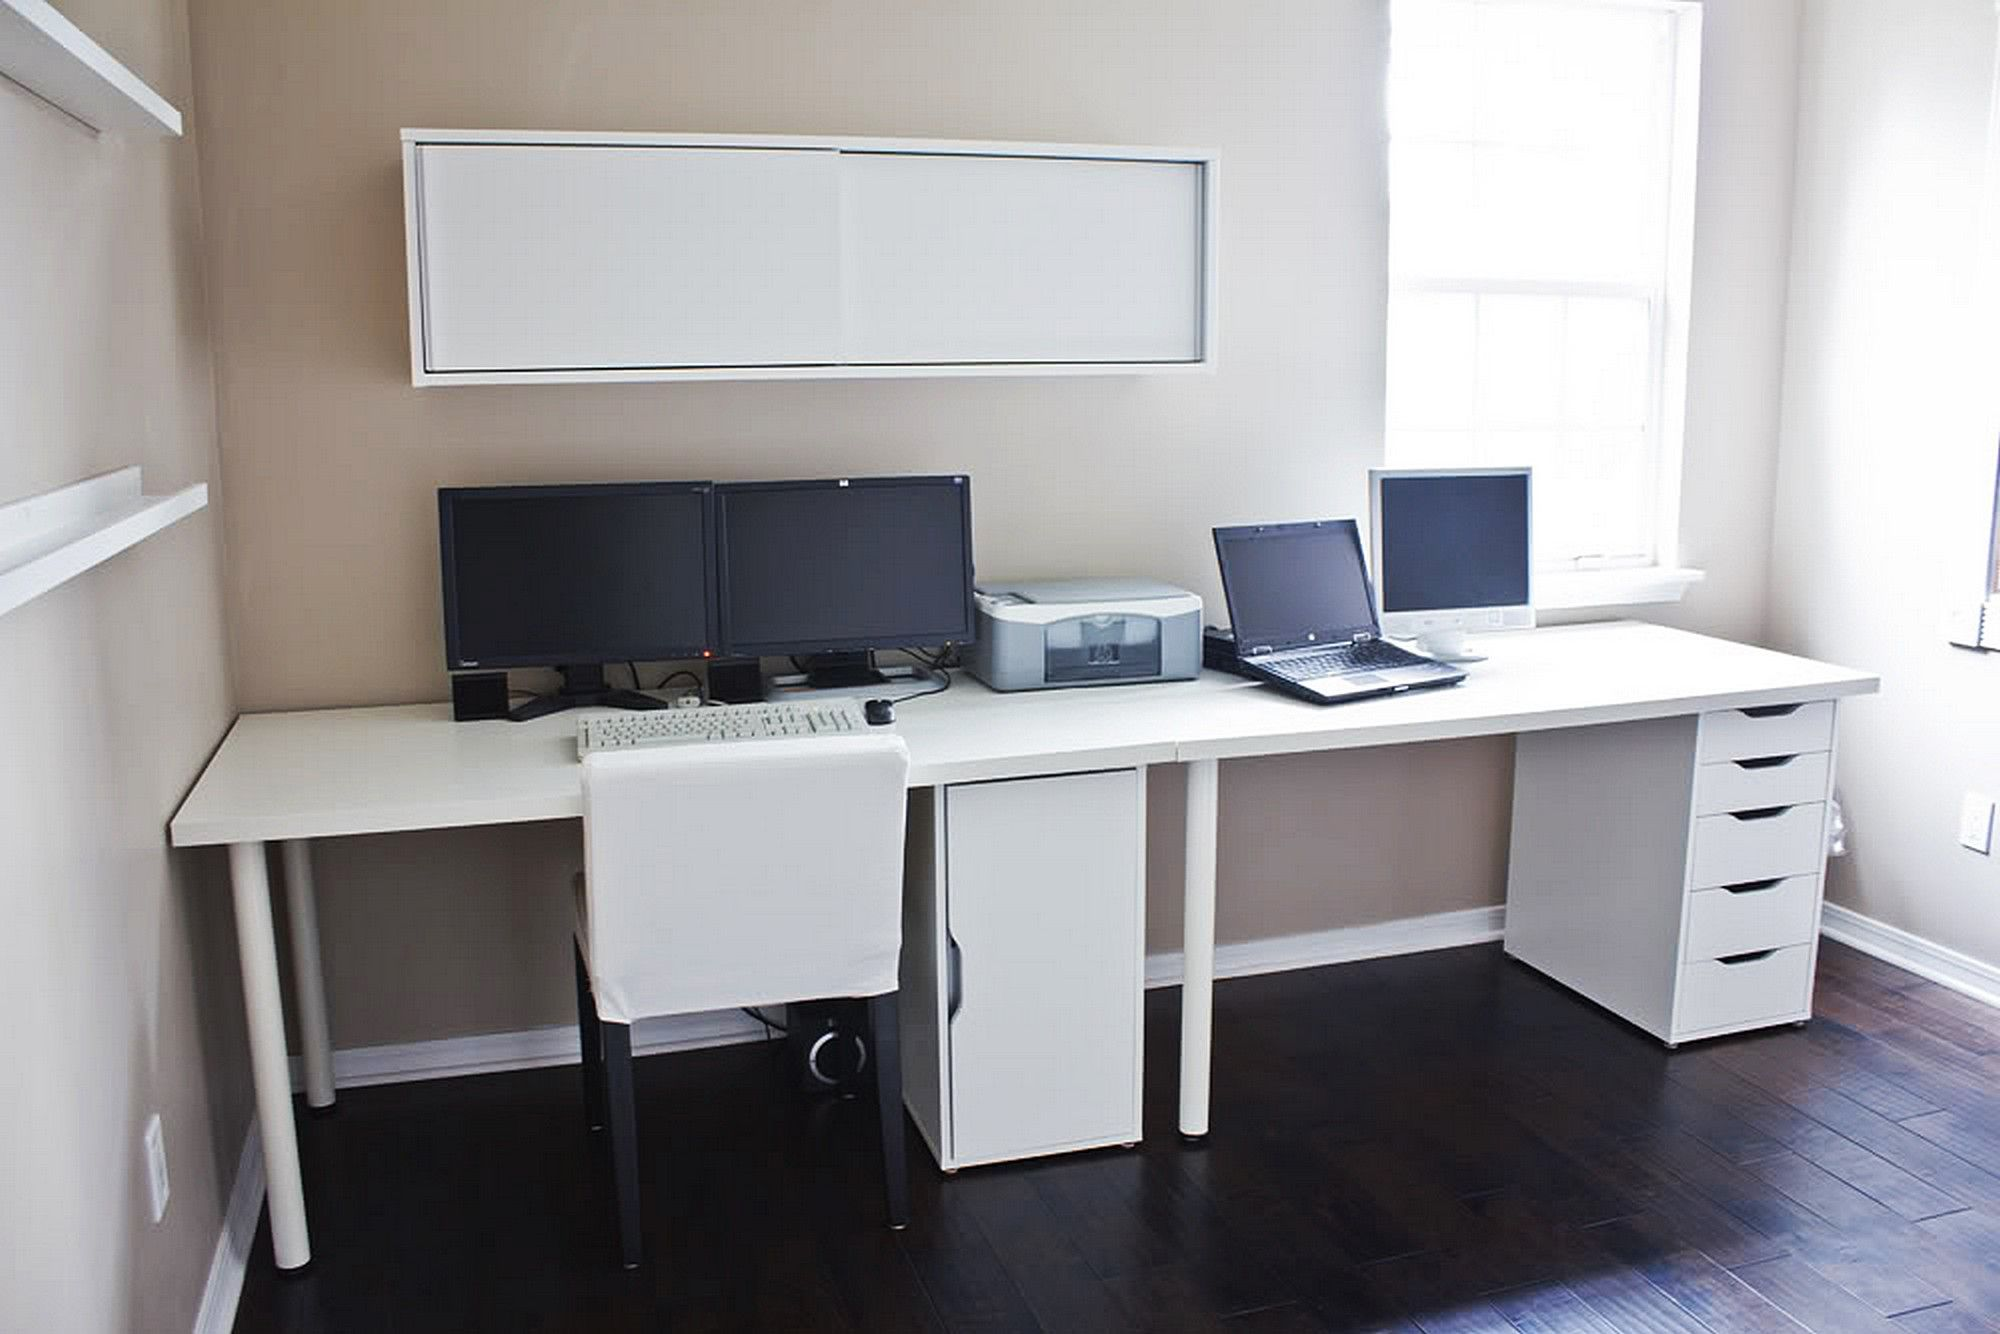 Elegant Clean White Computer Desk Setup From Ikea Linnmon Adils With Alex  Within Ikea Computer Desk Setup